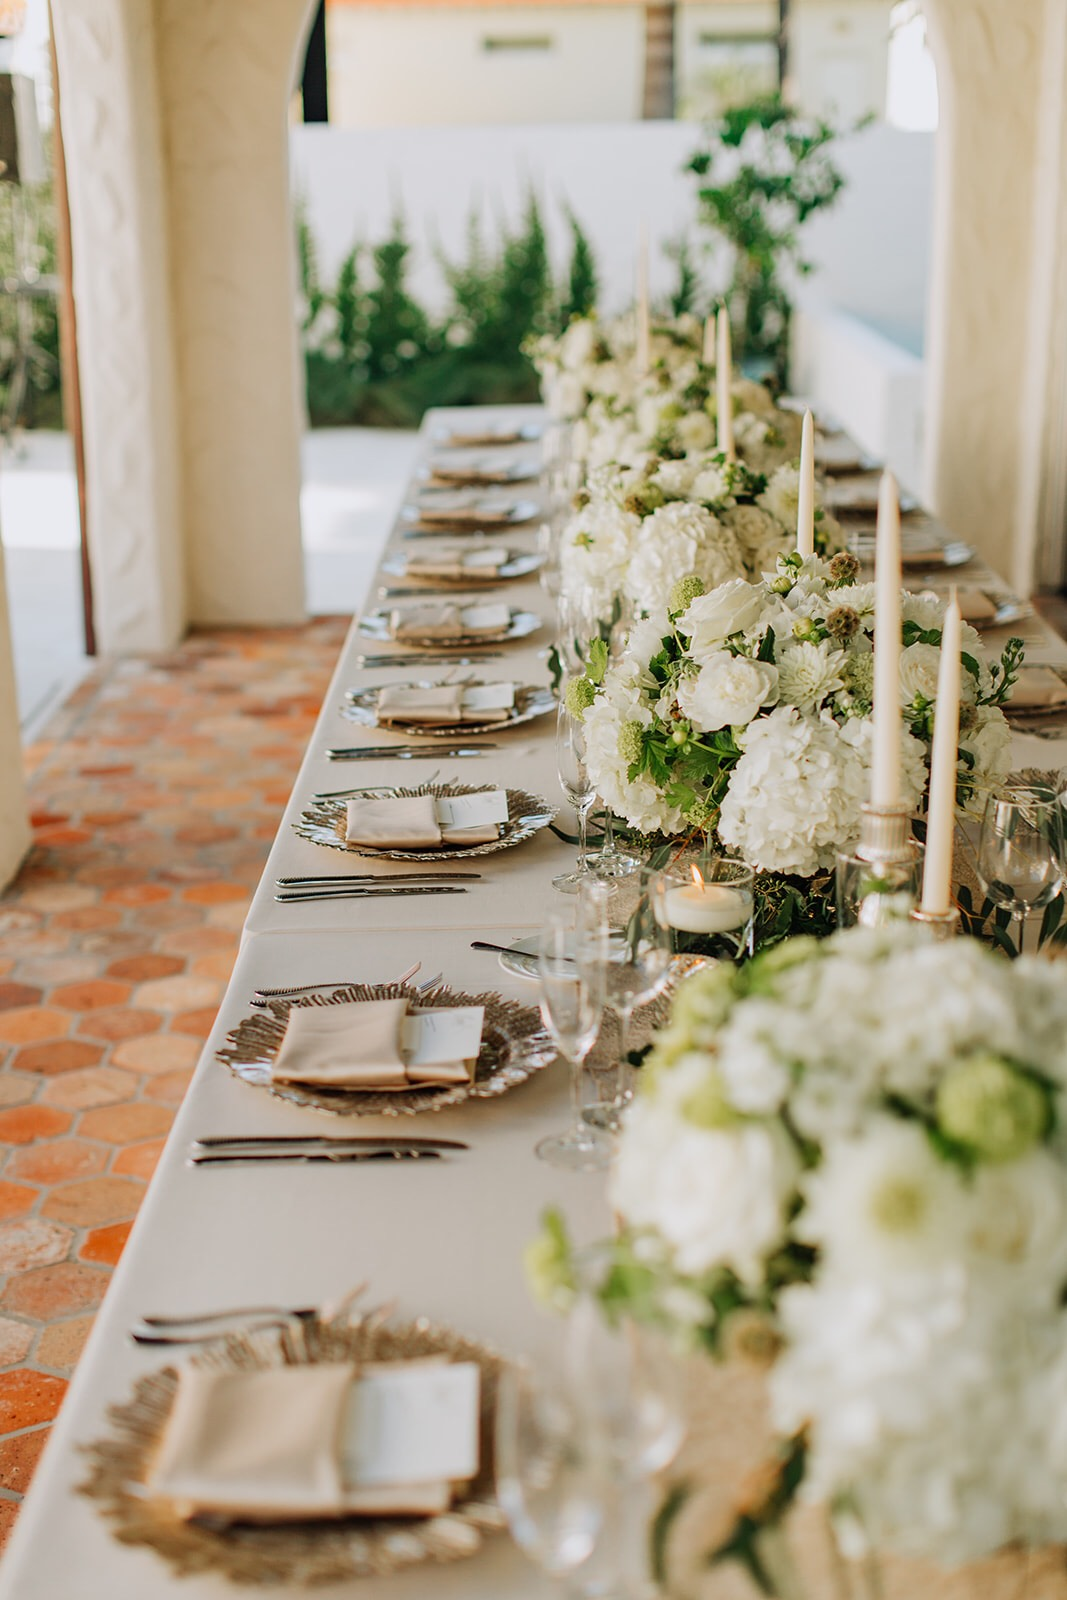 Table setting for Winter Park, Florida wedding with white floral decor